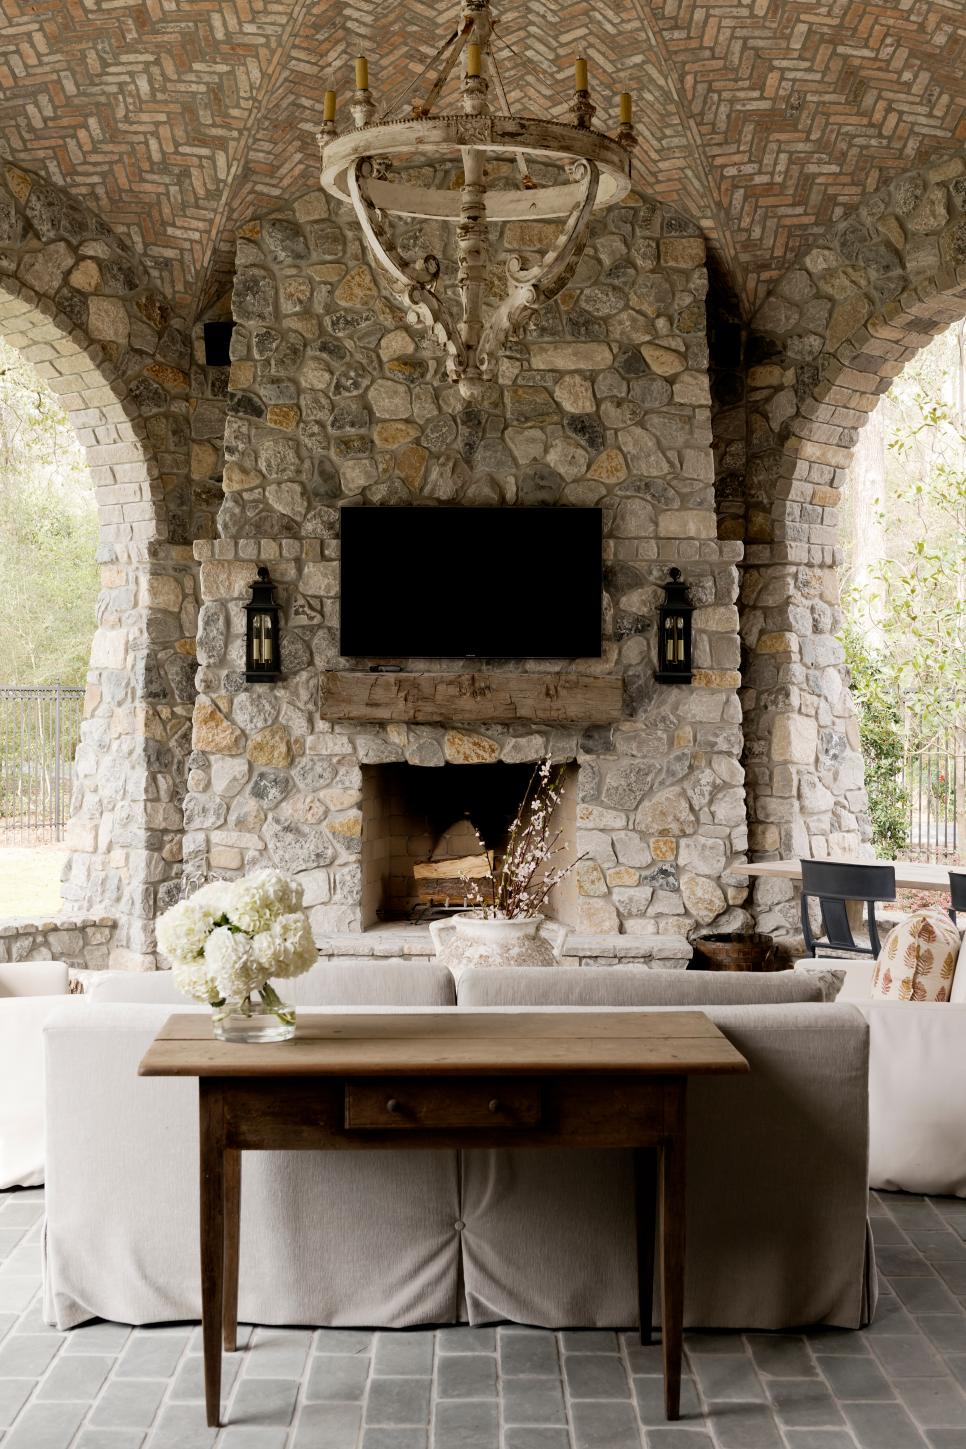 backyard-fireplace-and-pergolas-6